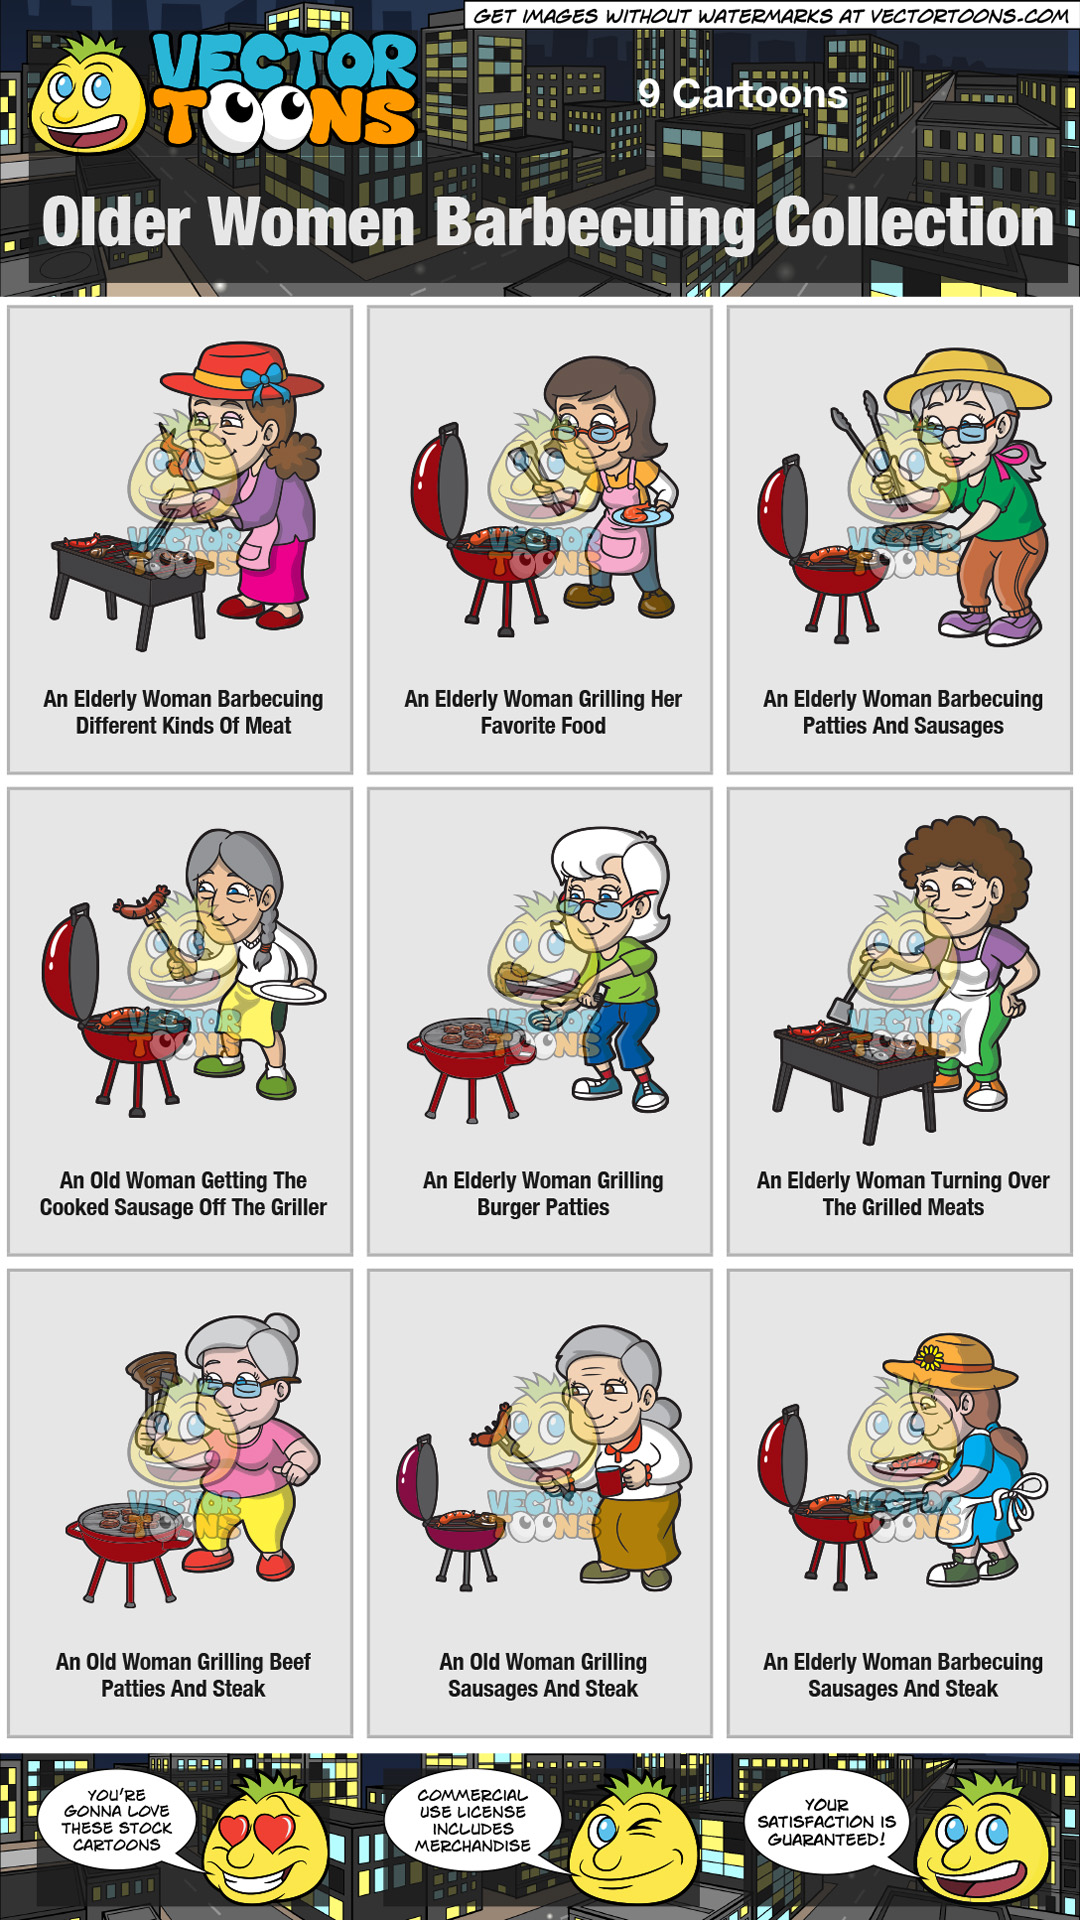 Older Women Barbecuing Collection thumbnail